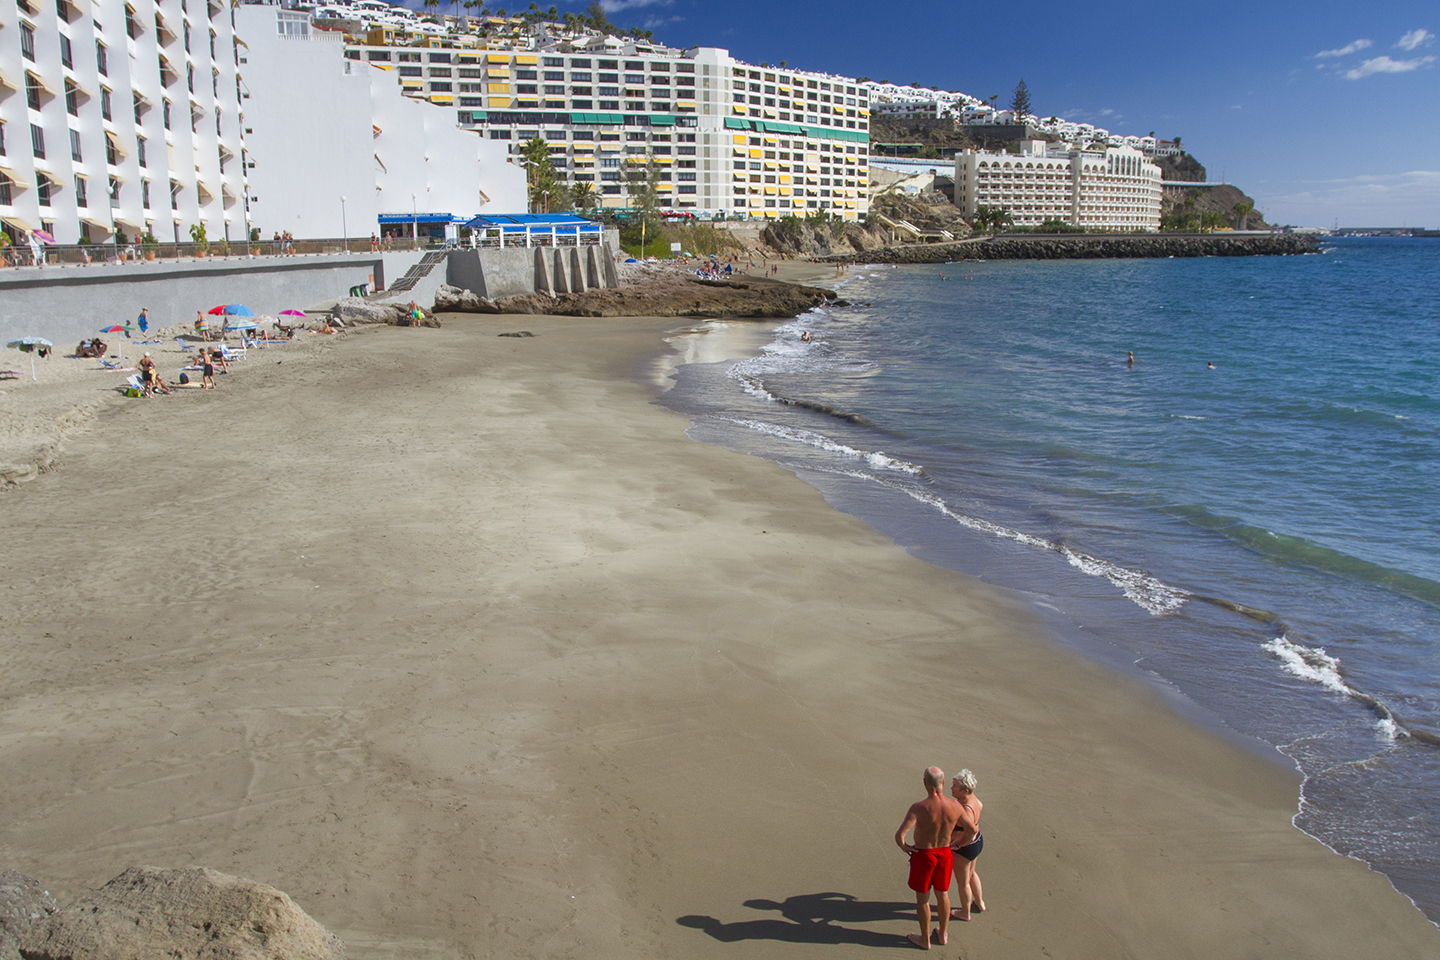 Patalavaca beach in south Gran Canaria